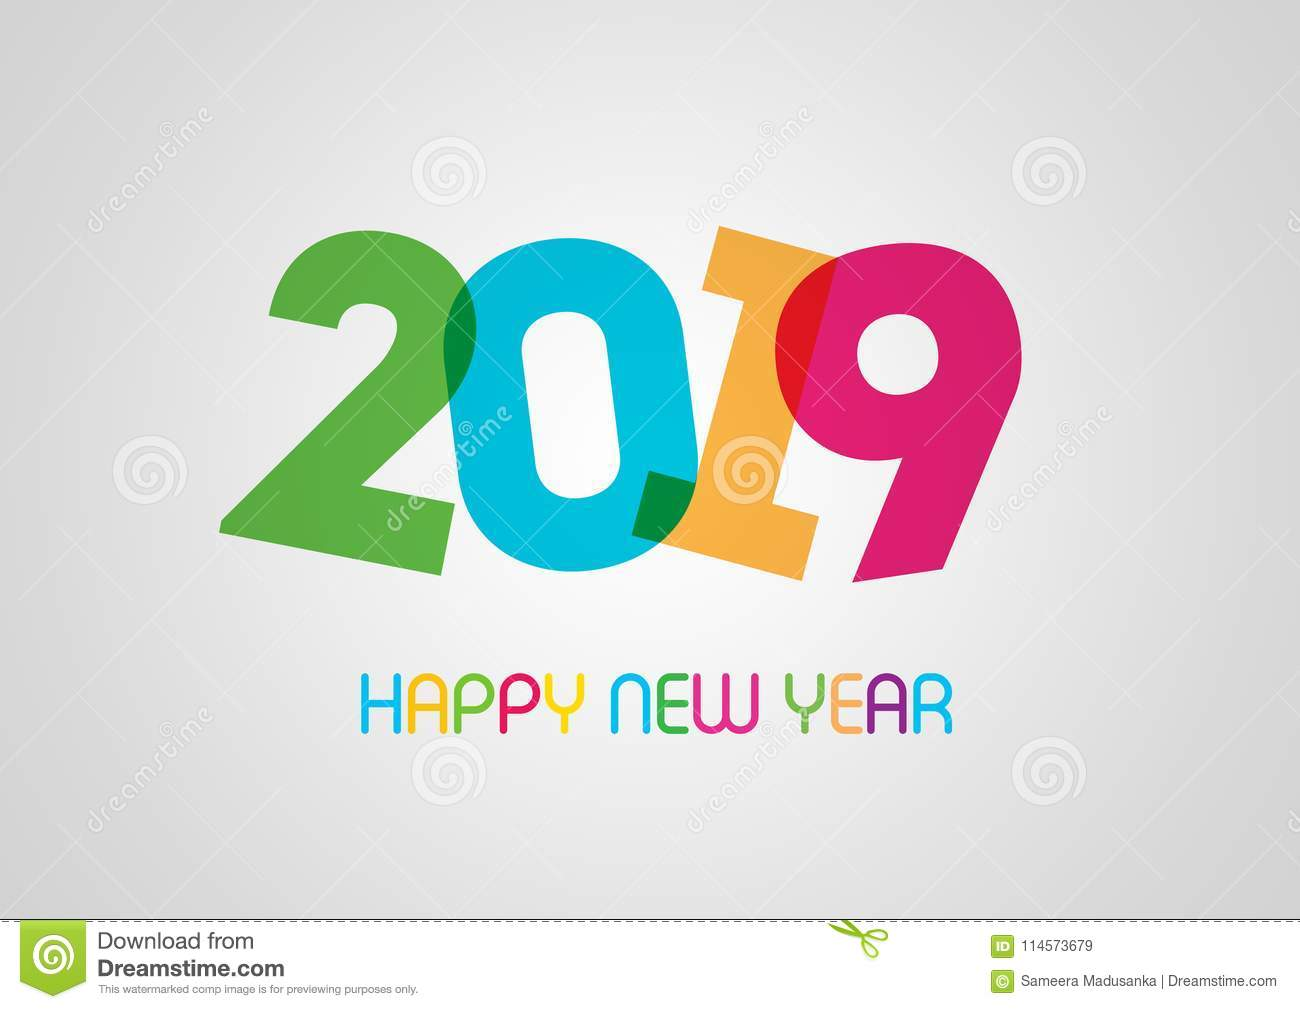 Happy new year 2019 greeting in white background stock - New year 2019 color ...